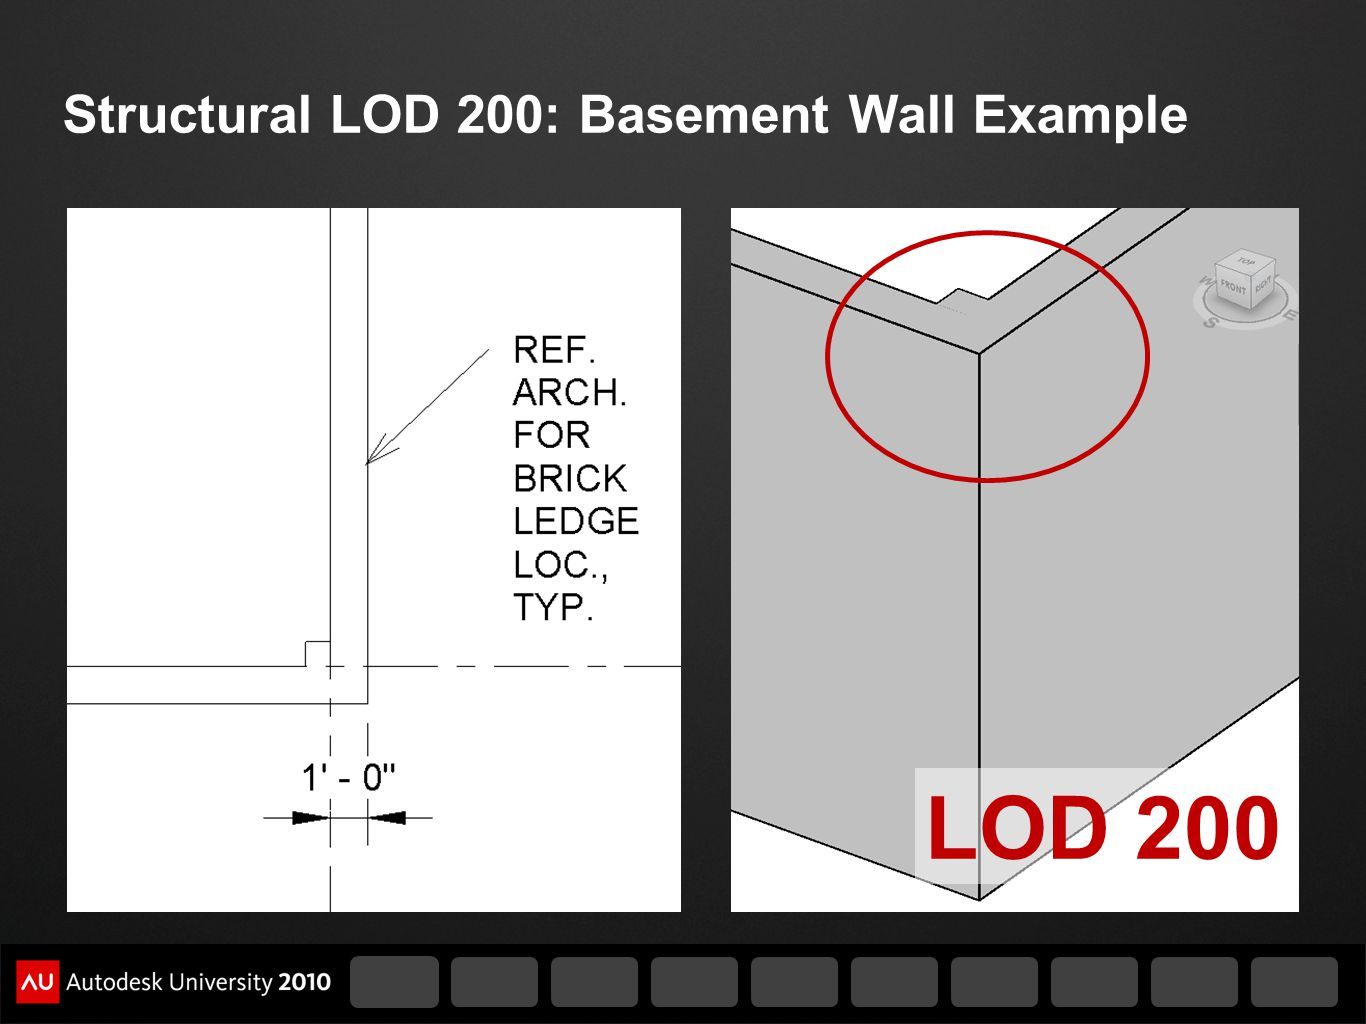 Structural LOD 200: Basement Wall Example